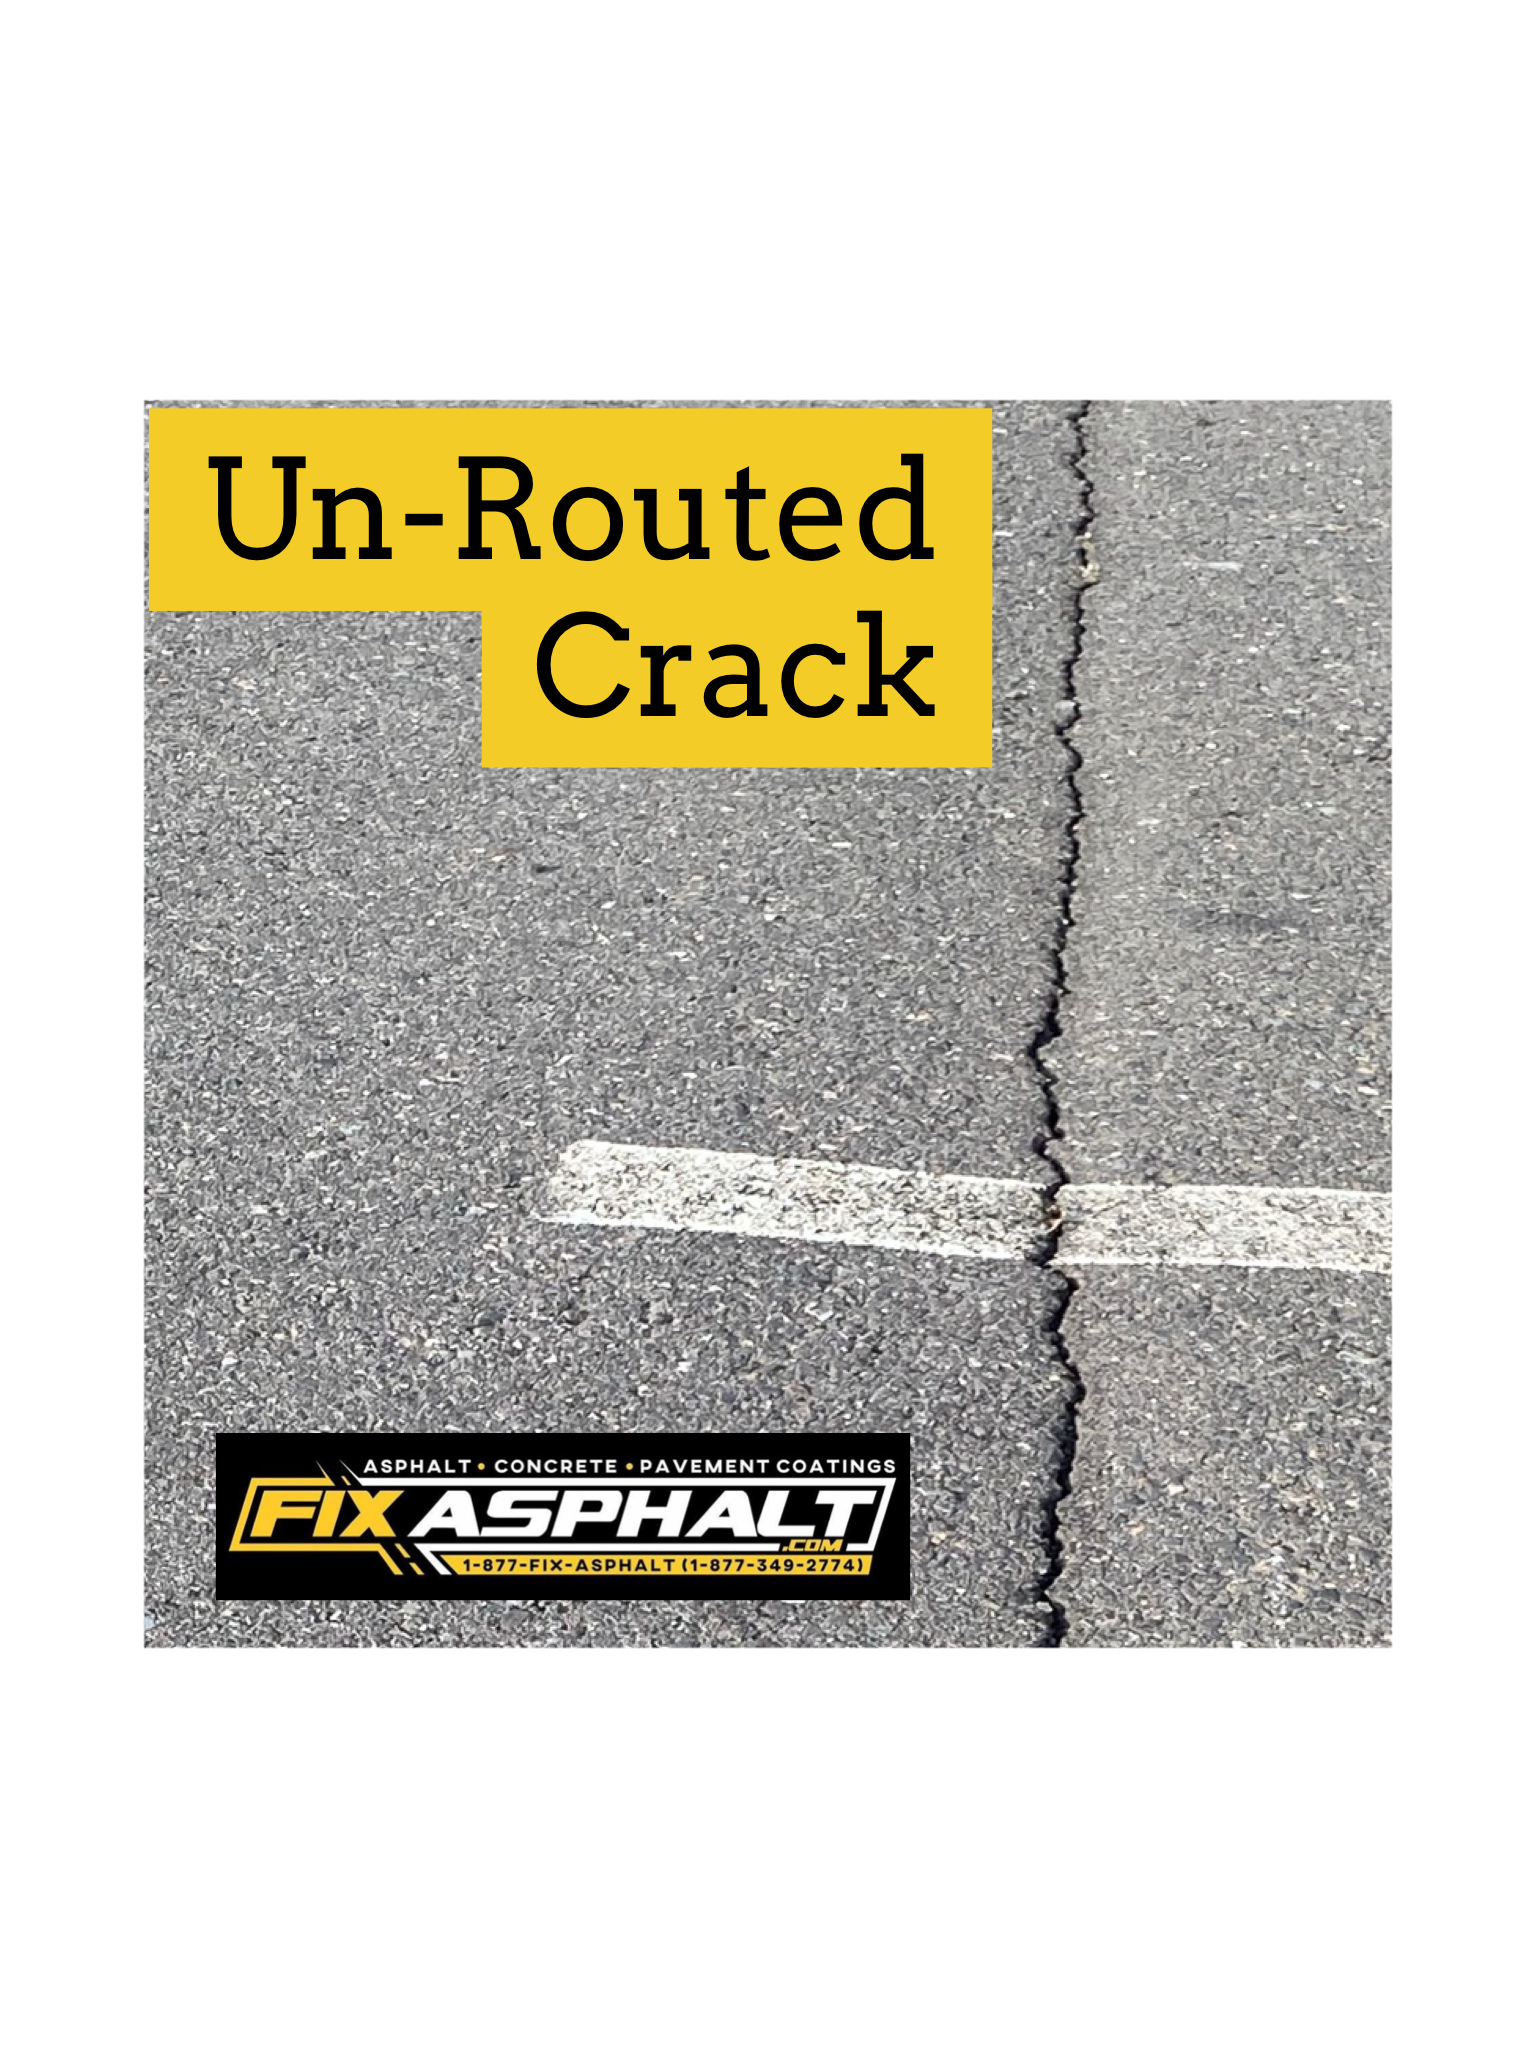 NJ Parking Lot Crack Routing